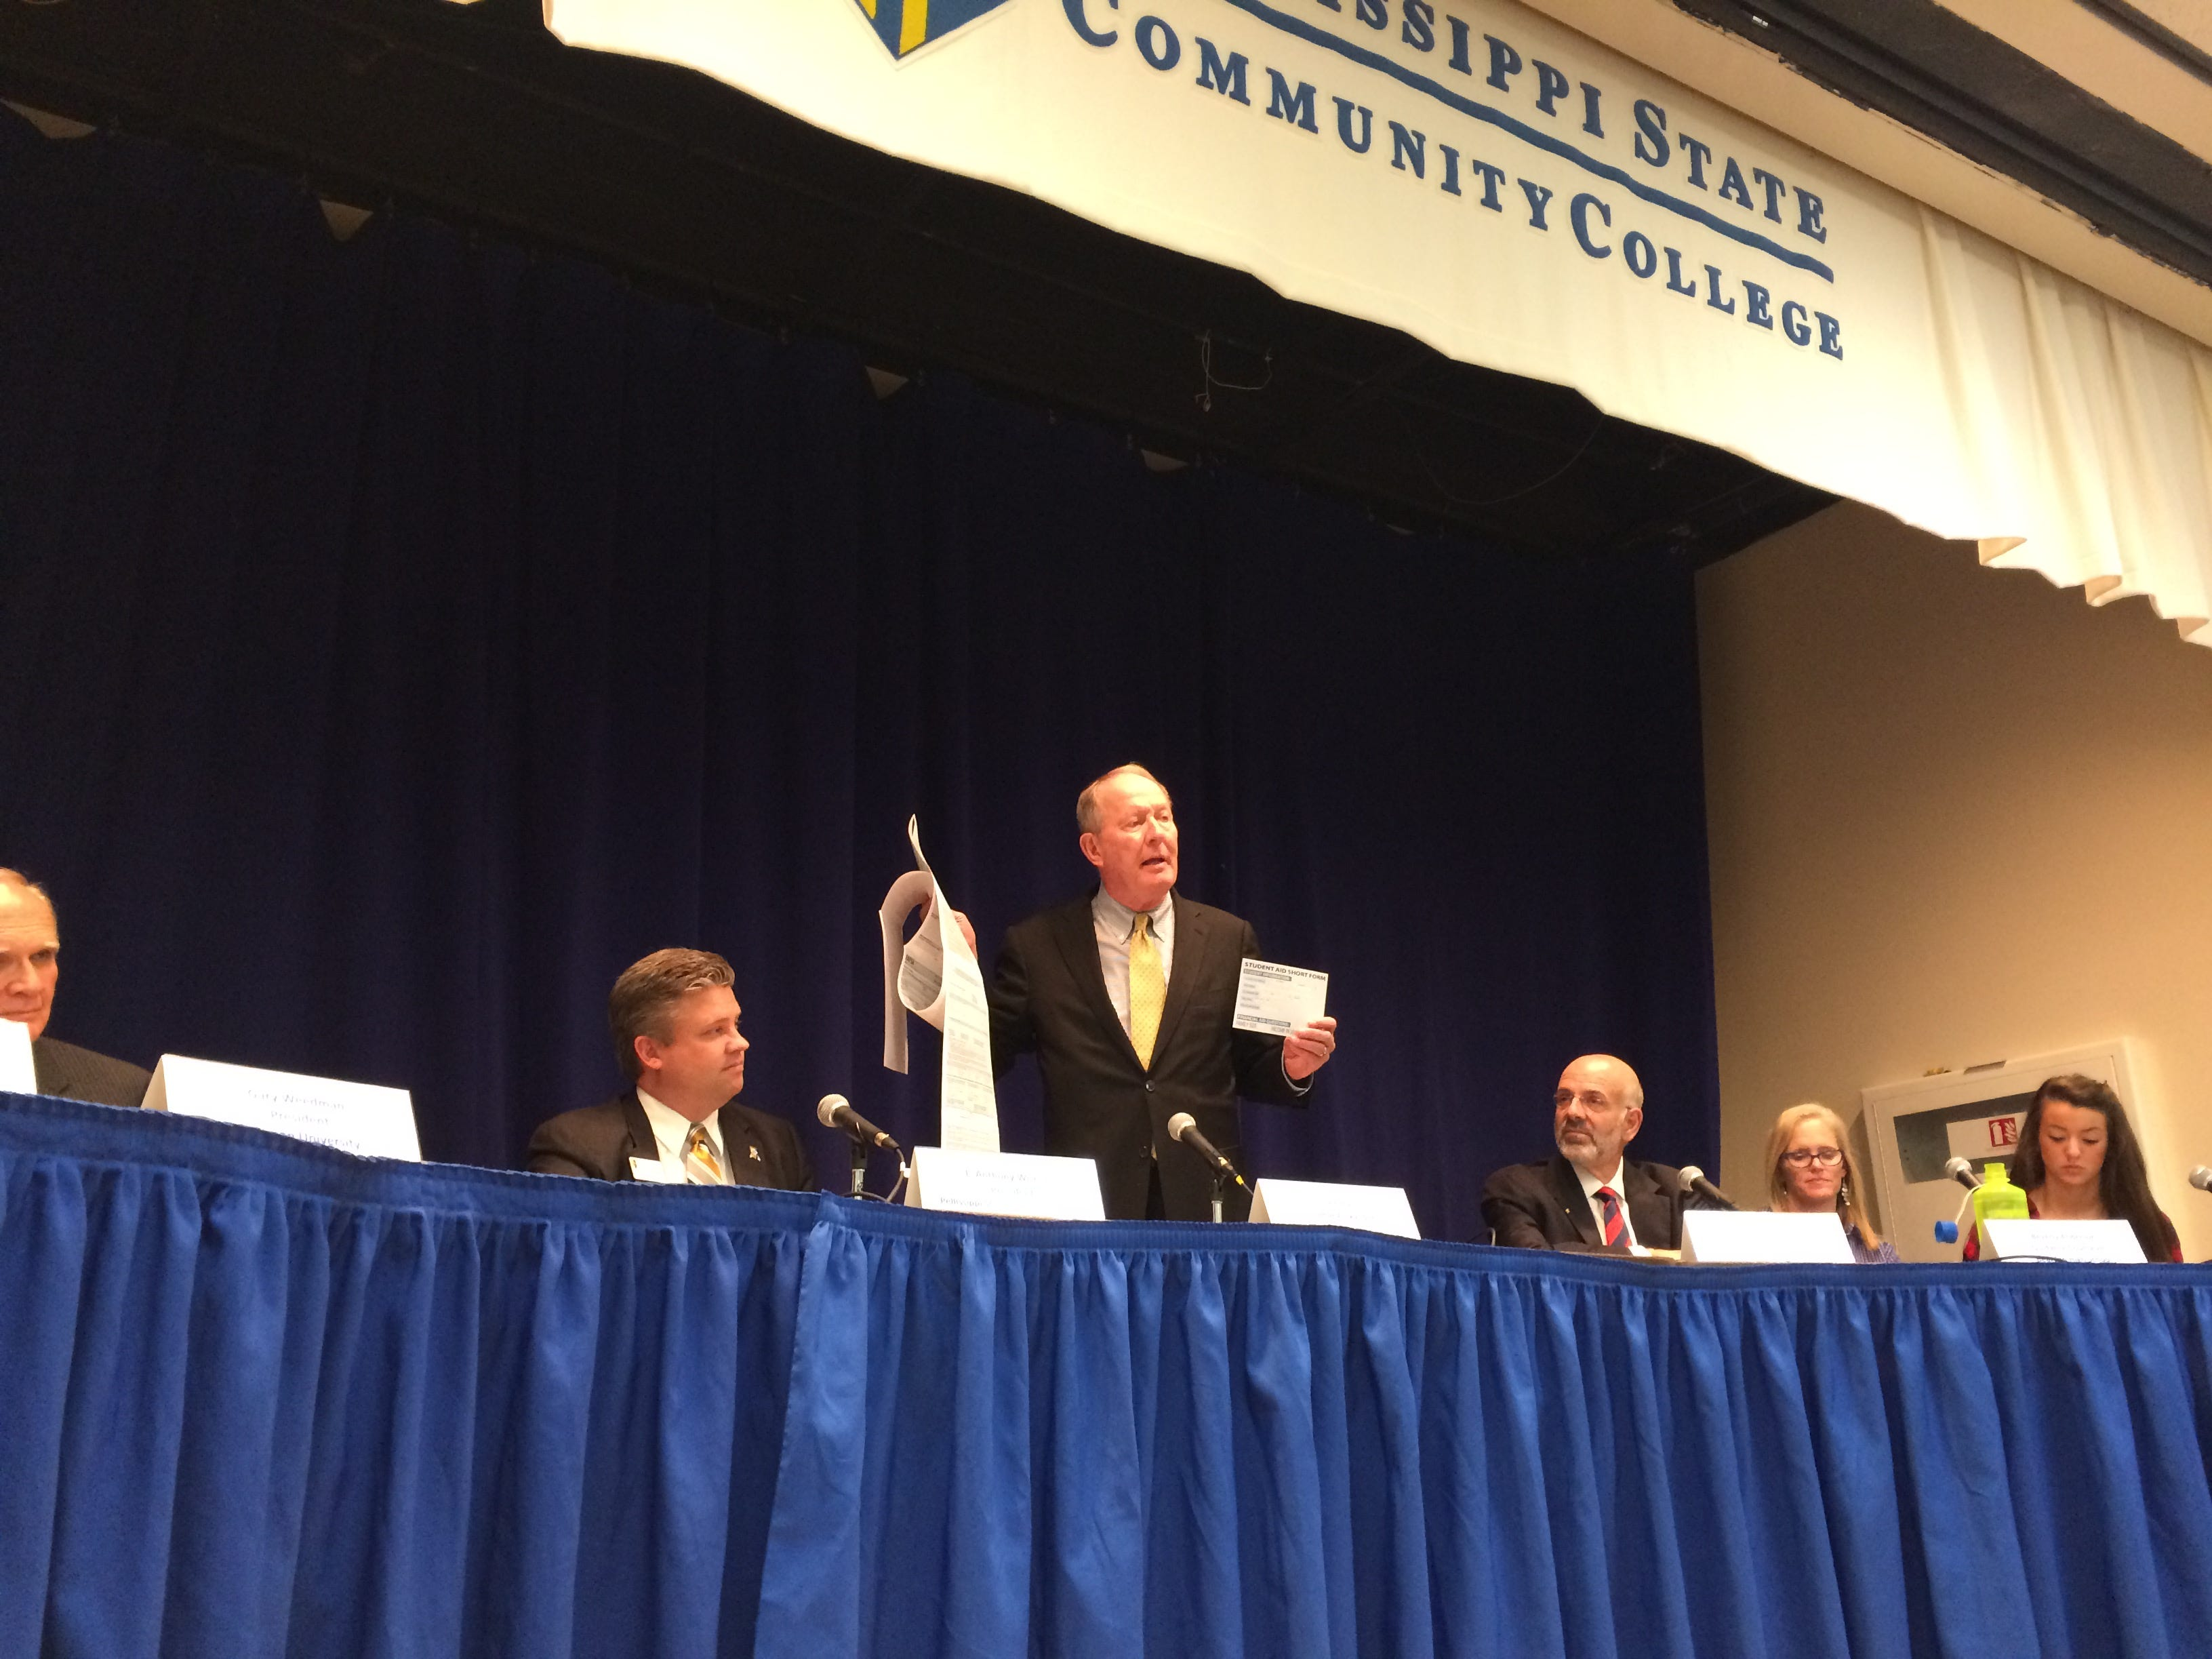 Sen. Lamar Alexander demonstrated the difference between the current free application for federal student aid, or FASFA, and his proposed shortened version during a roundtable discussion at Pellissippi State Community College Tuesday, Oct. 21.